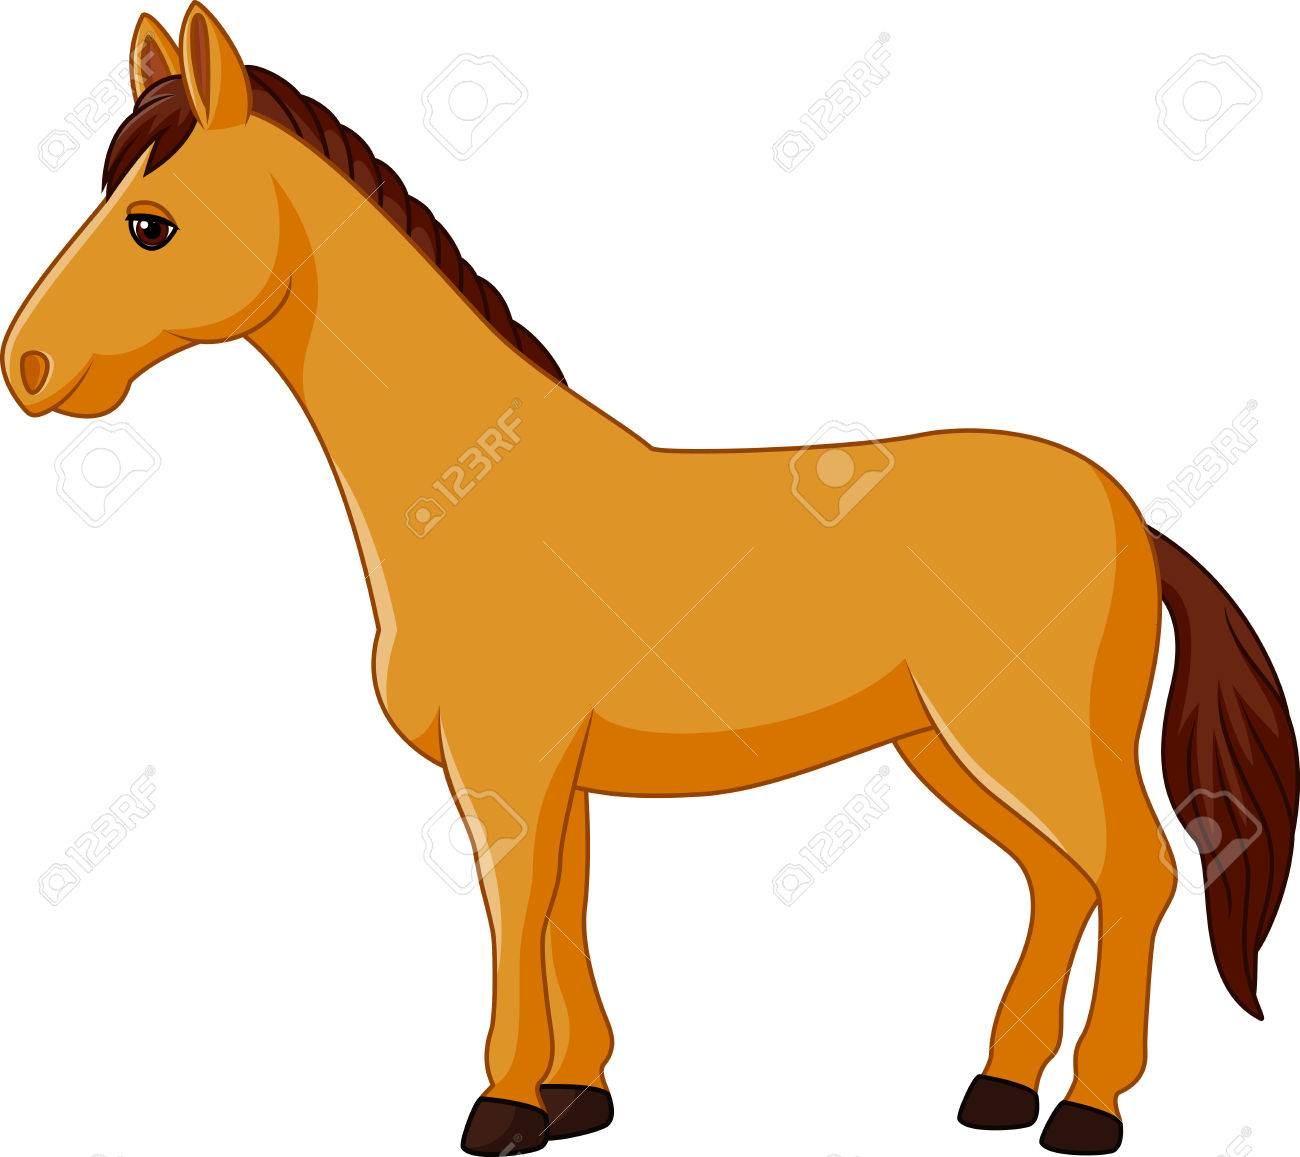 Vector Illustration Of Cartoon Horse Character Isolated On White Royalty Free Cliparts Vectors And Stock Illustration Image 52421615